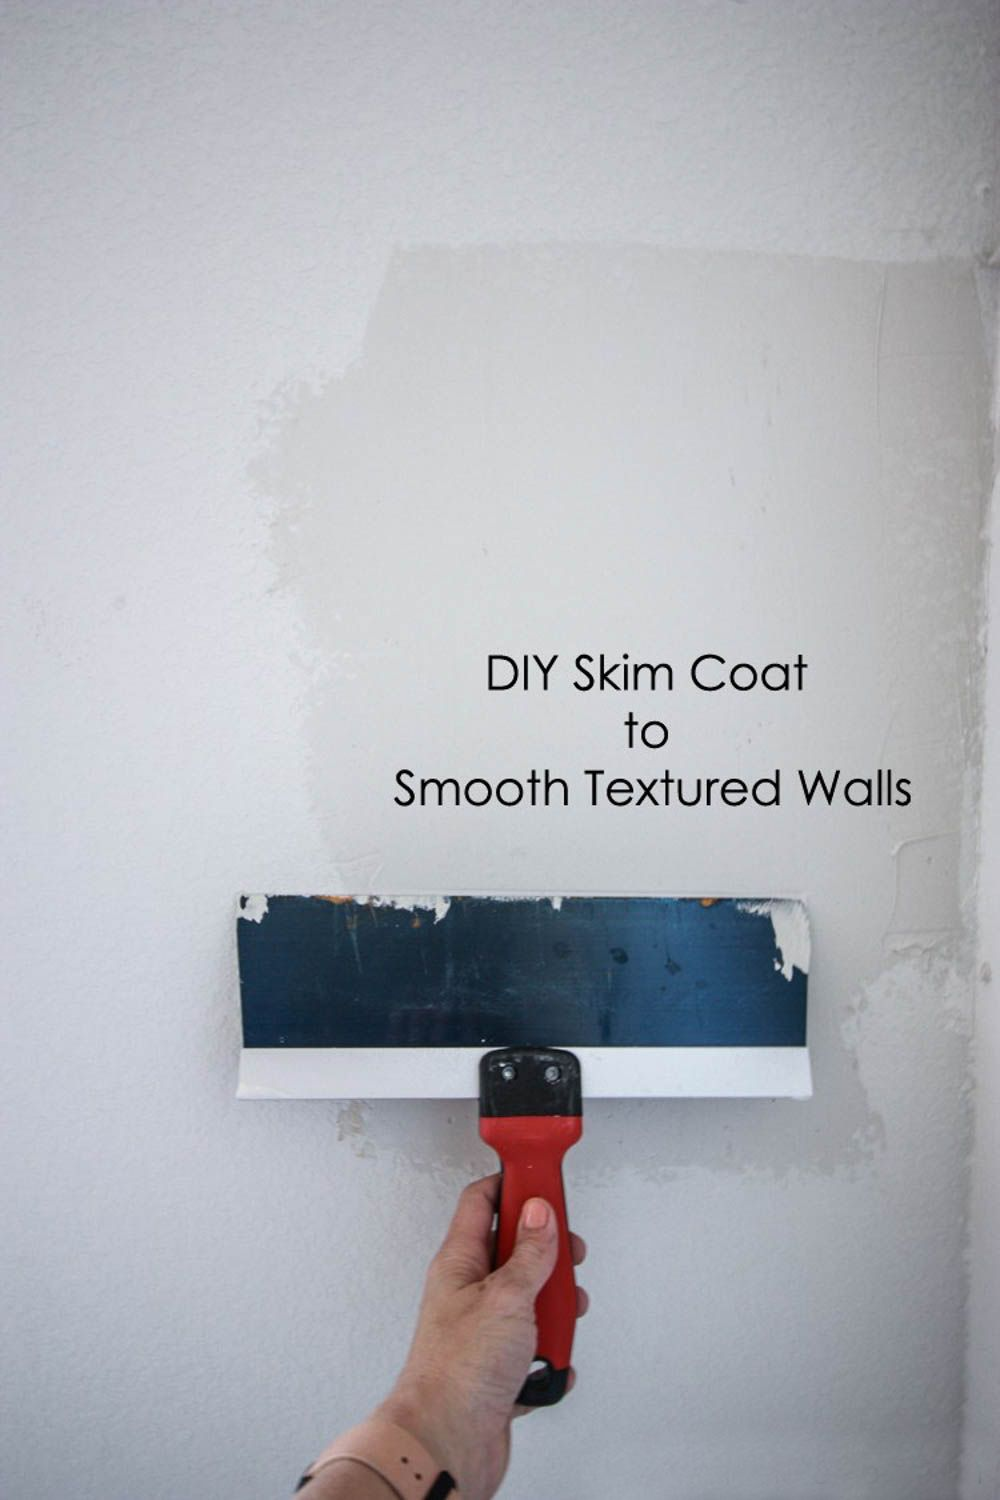 Diy Skim Coat To Smooth Textured Walls Plaster Bathroom Wallpaper Drywall Texture